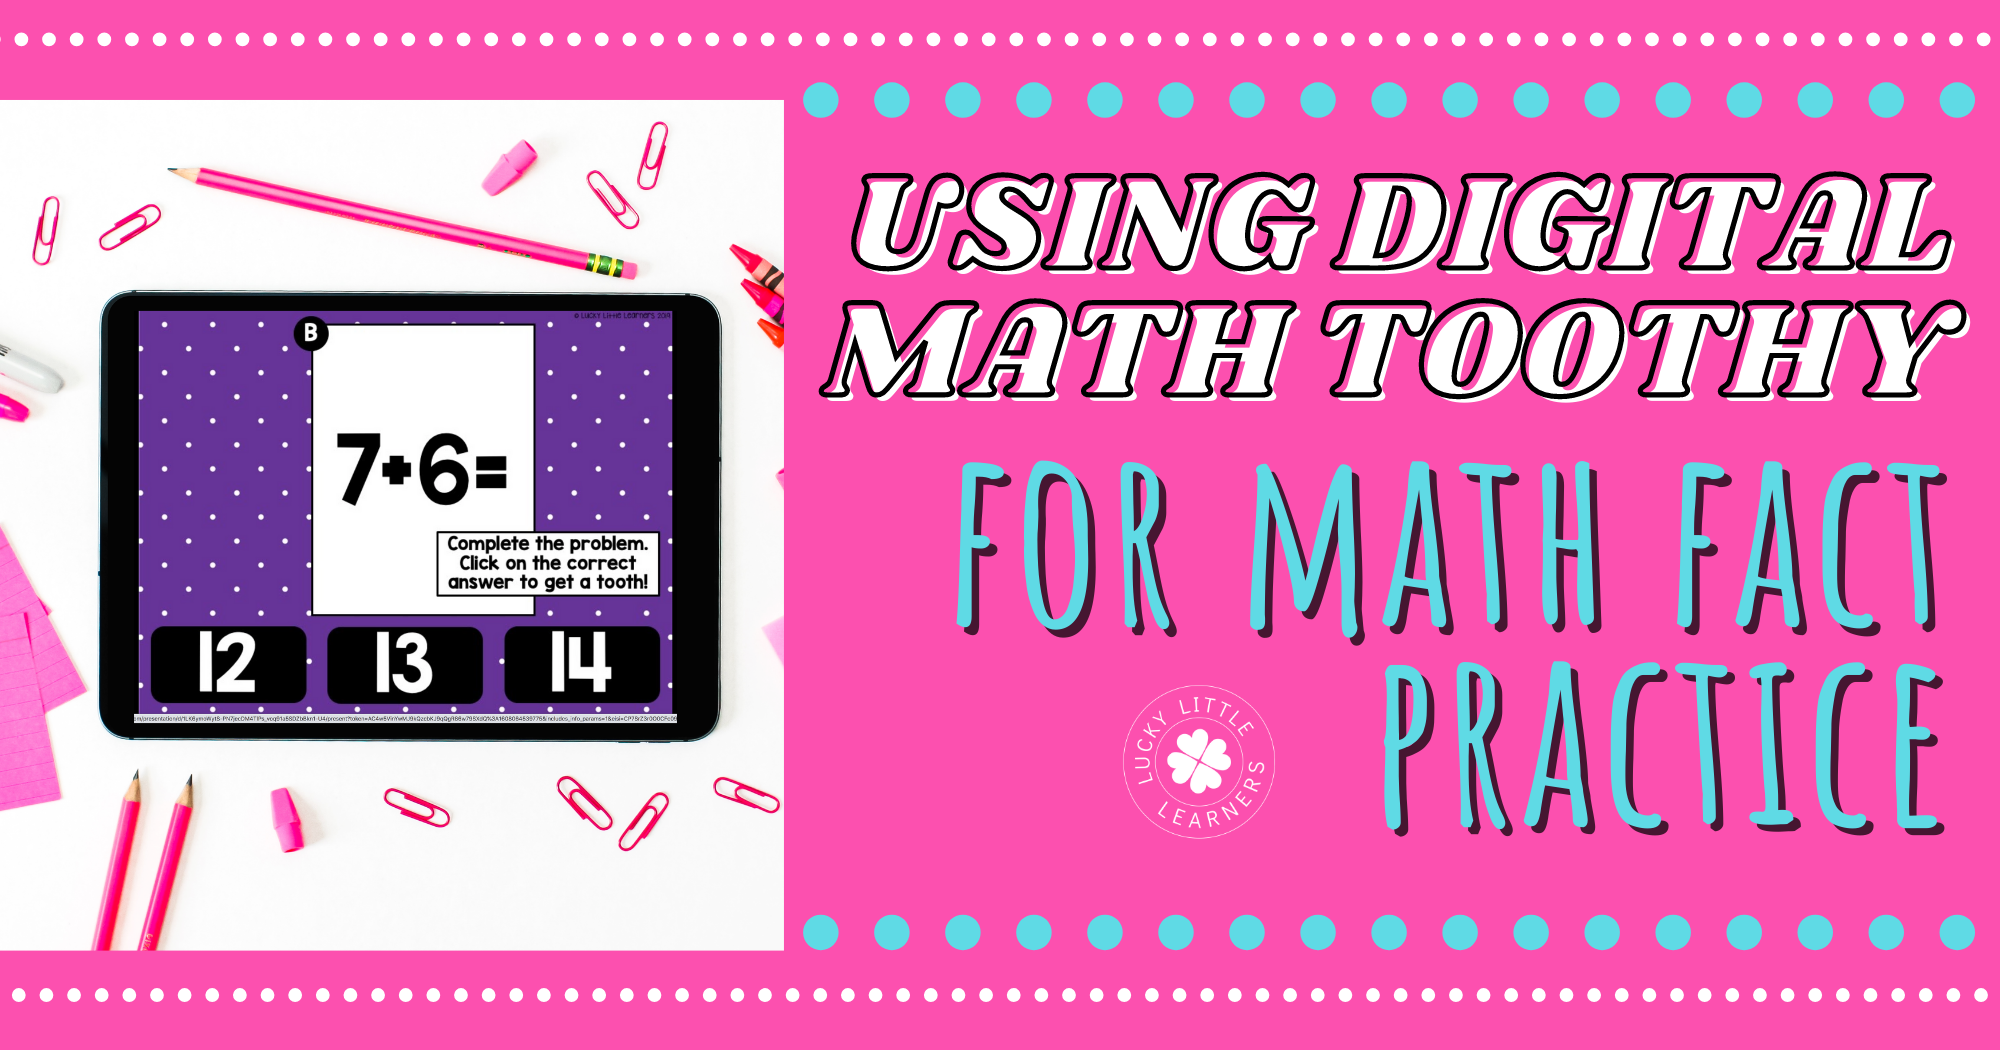 Using Digital Math Toothy for Math Fact Practice